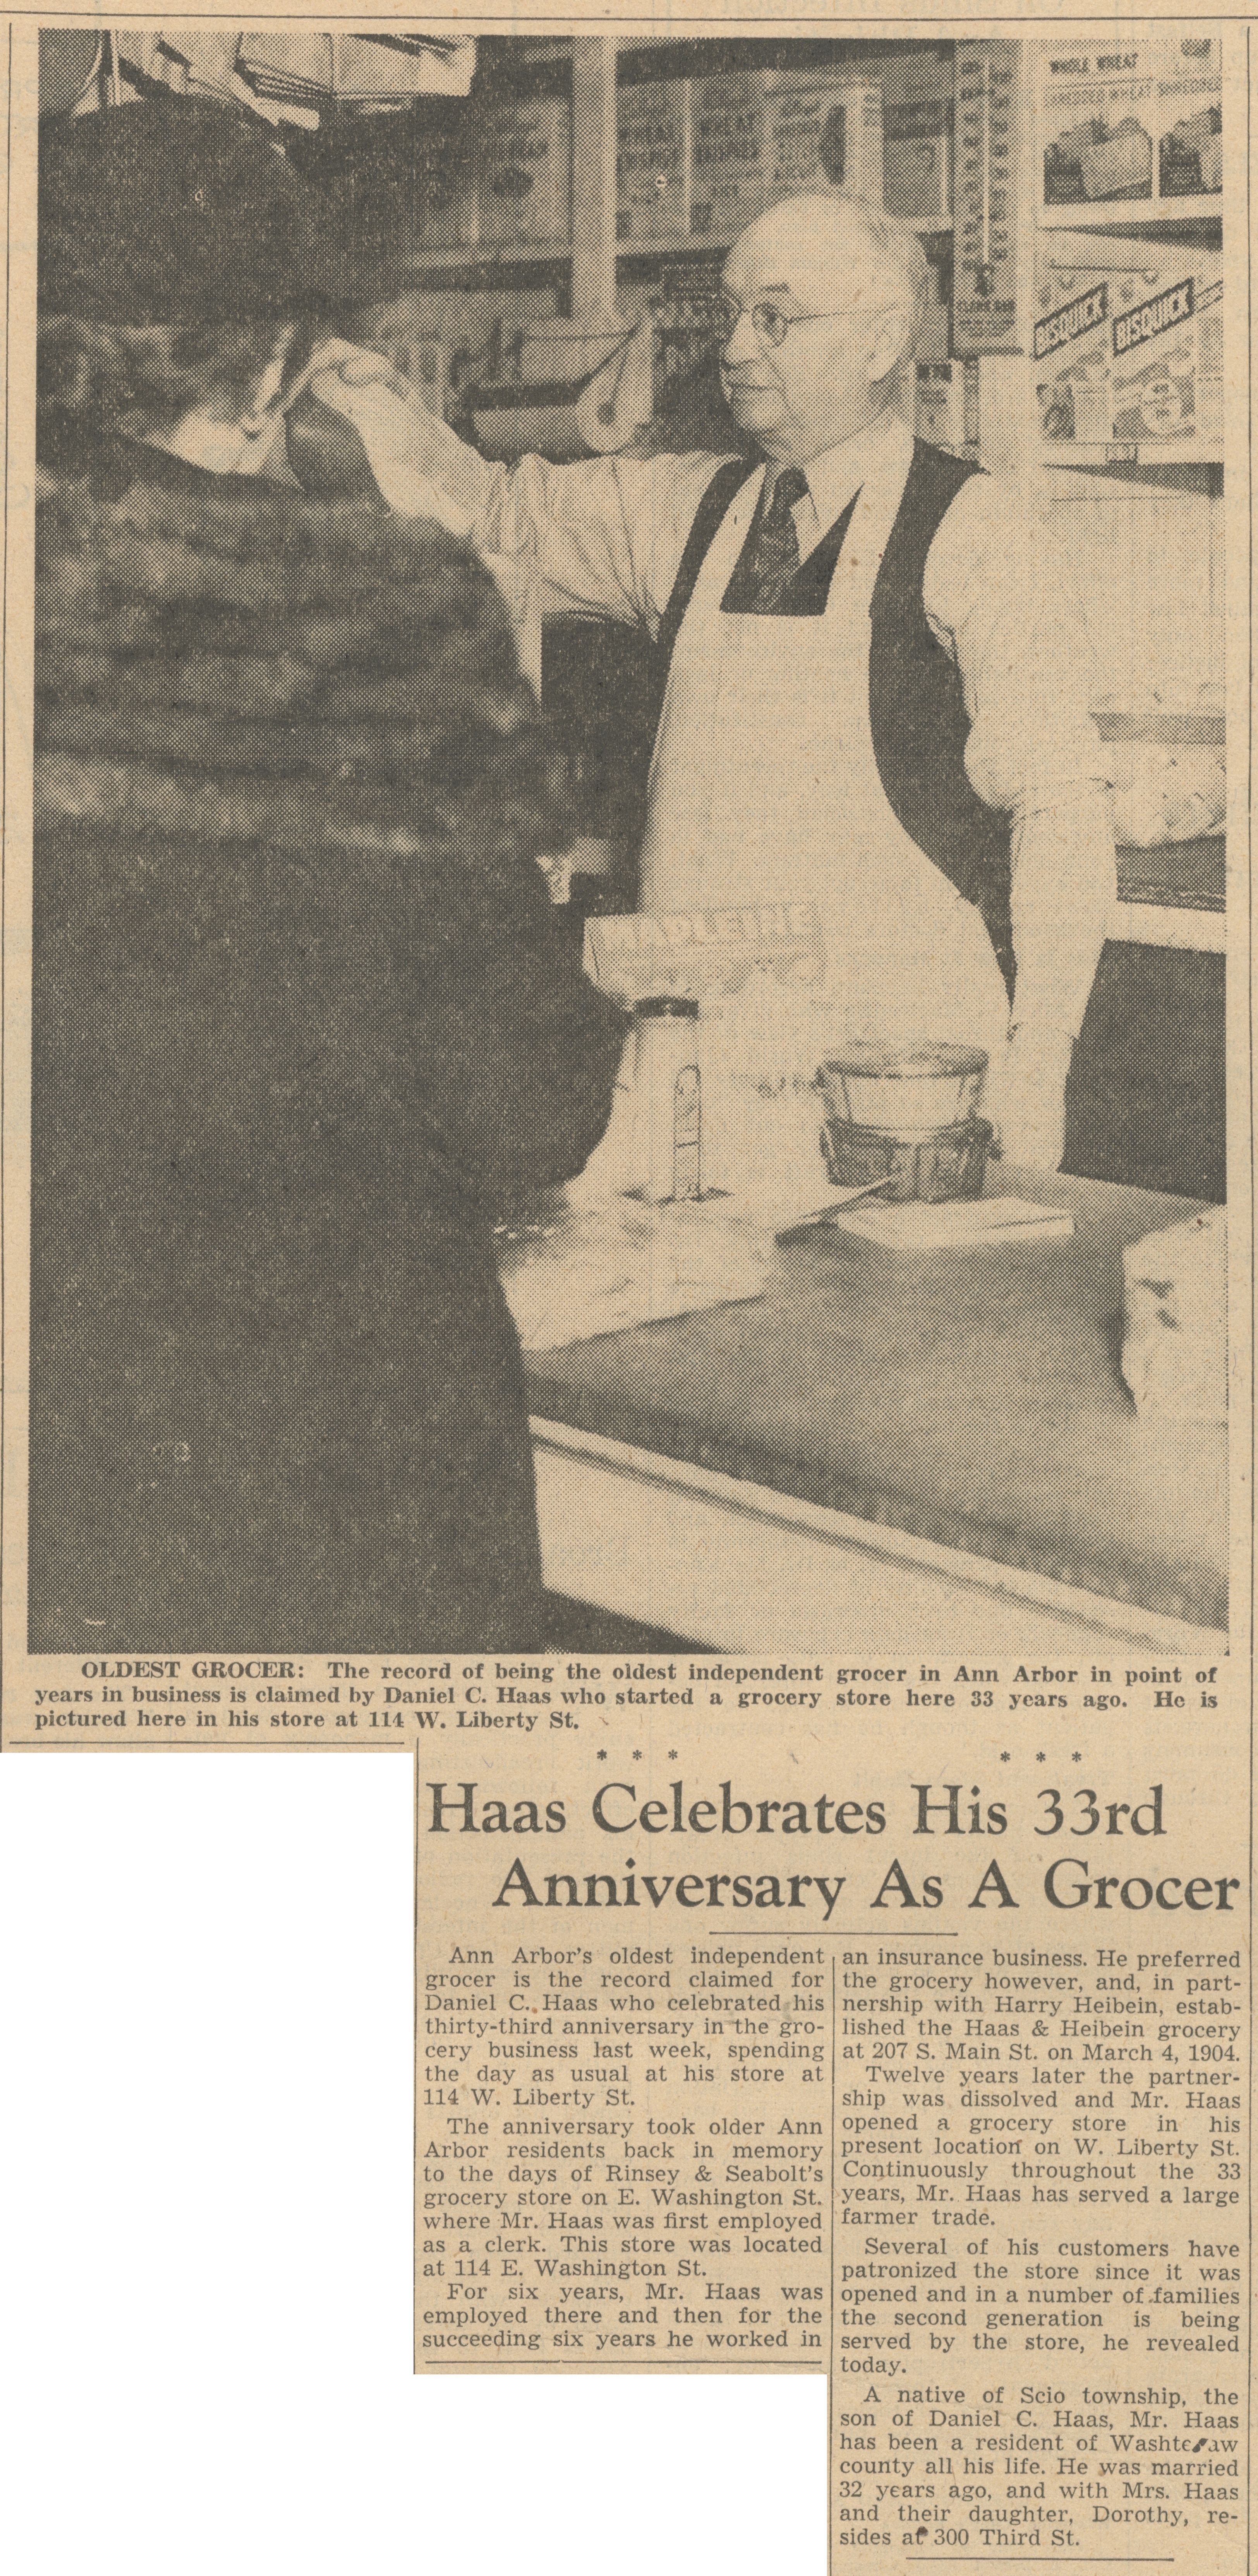 Haas Celebrates His 33rd Anniversary As A Grocer image